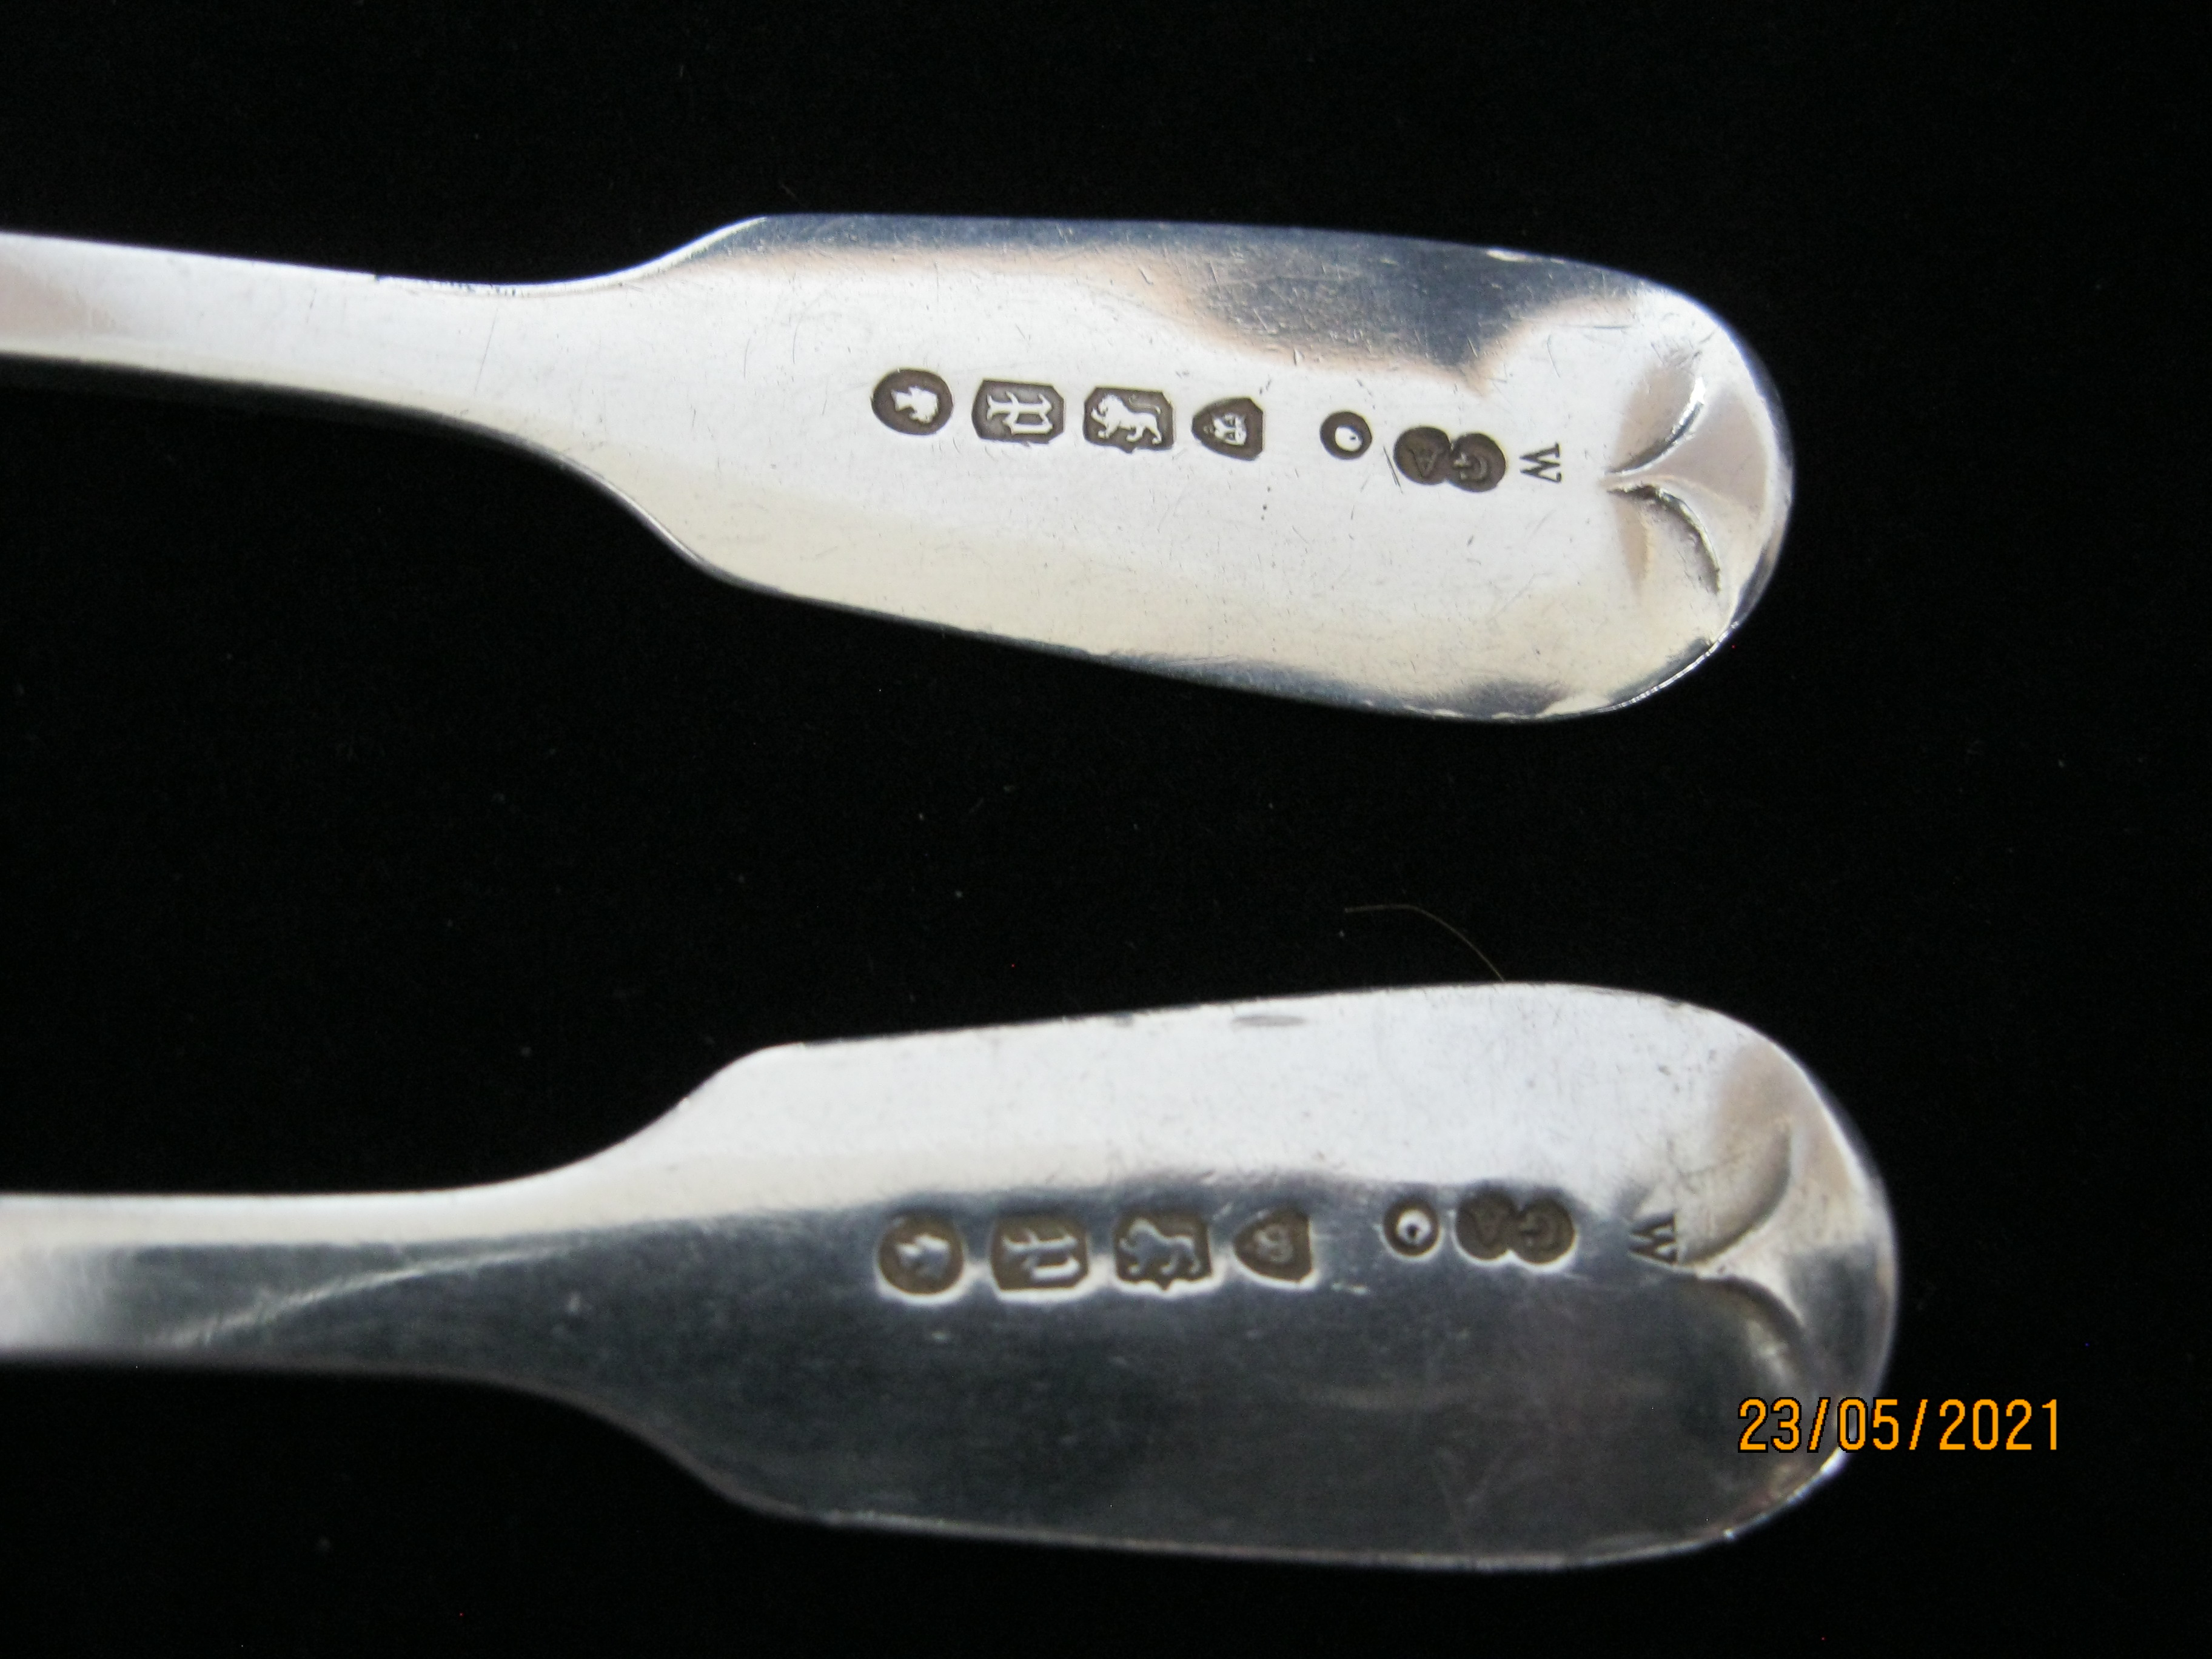 Matching Pair Of Antique Victorian Sterling Silver Teaspoons 1870 London - Image 3 of 4